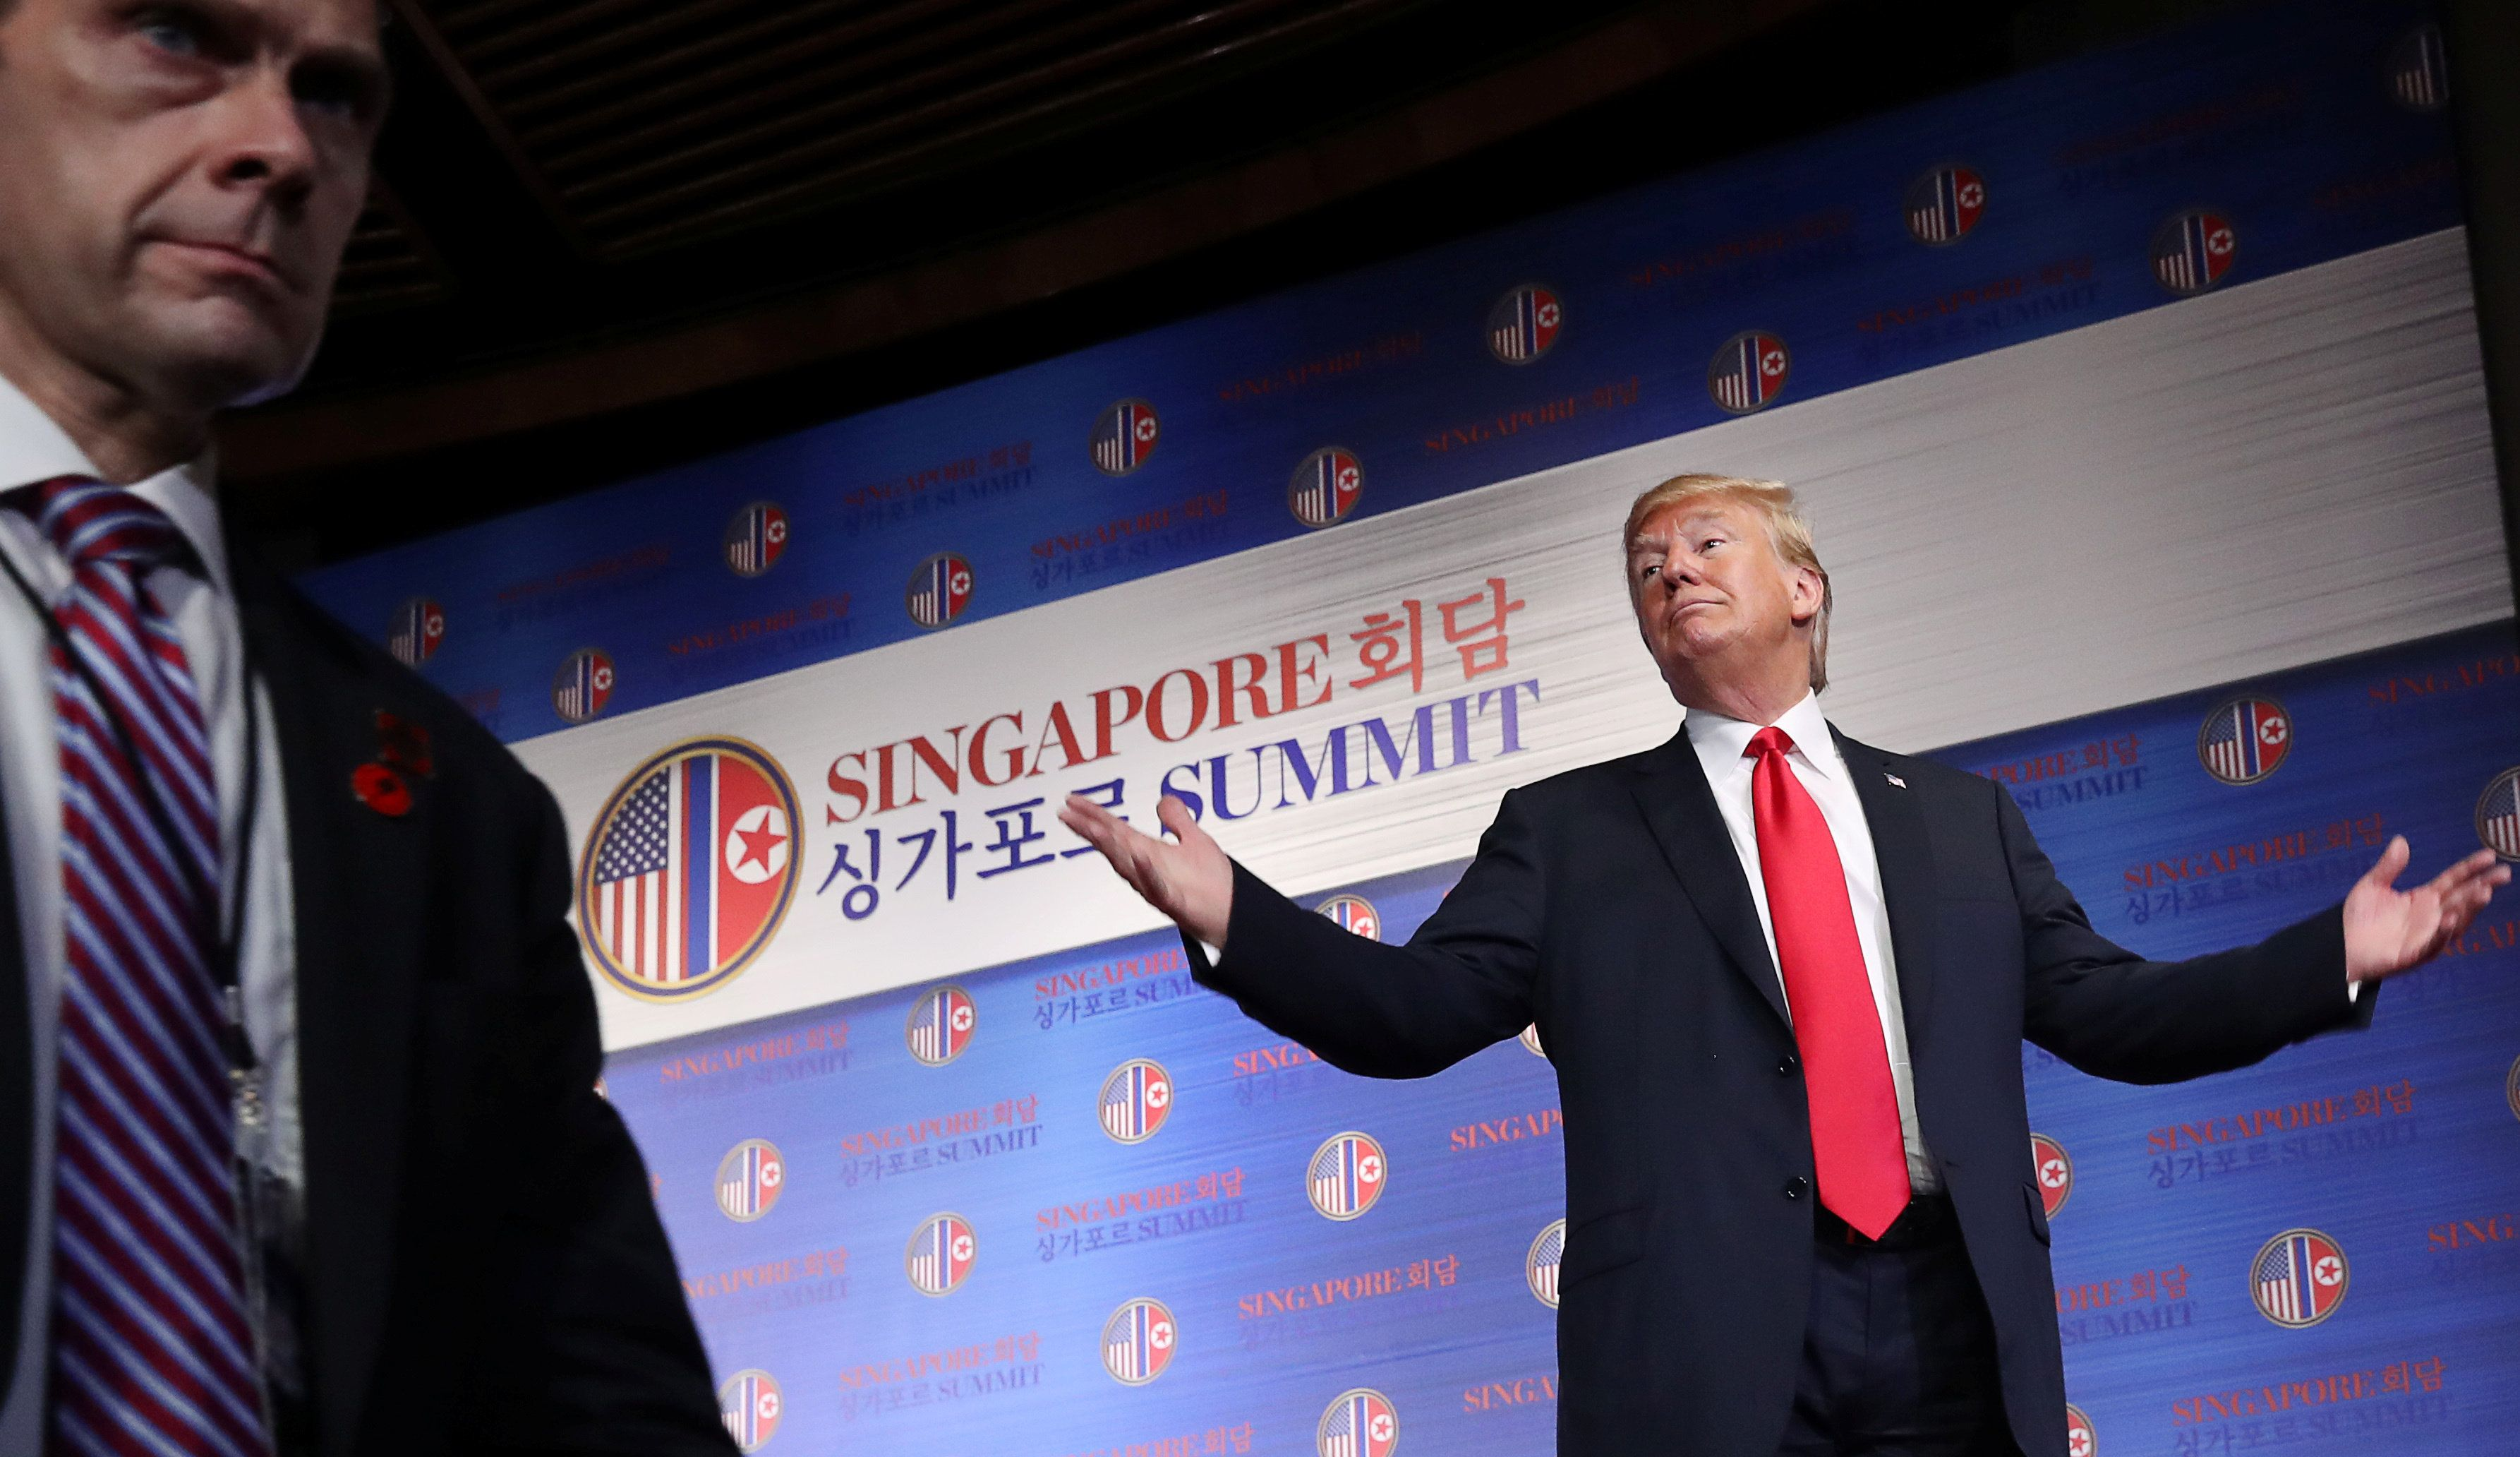 U.S. President Donald Trump reacts after a news conference after his meeting with North Korean leader Kim Jong Un at the Capella Hotel on Sentosa island in Singapore June 12, 2018. REUTERS/Jonathan Ernst